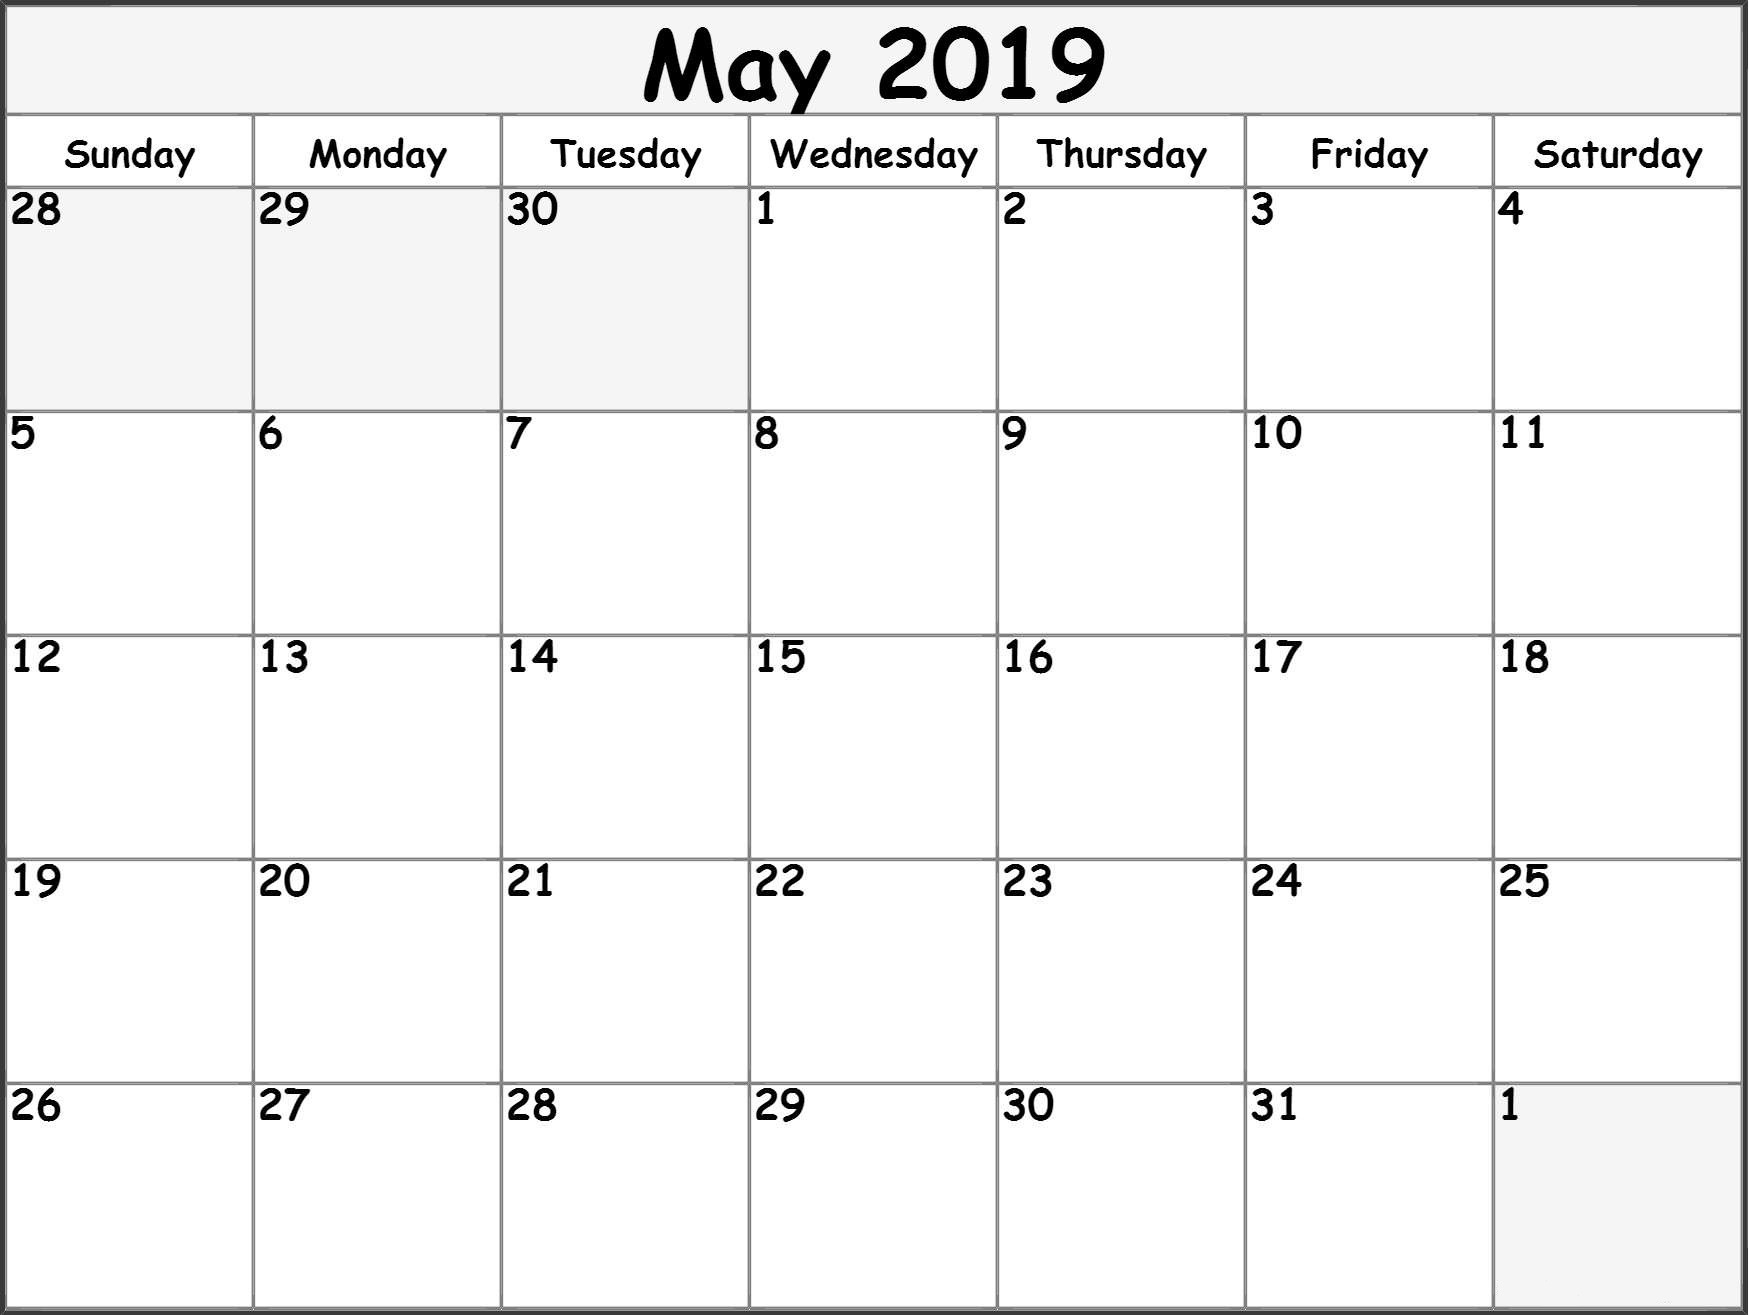 may 2019 blank calendar download blank ::May 2019 Blank Template